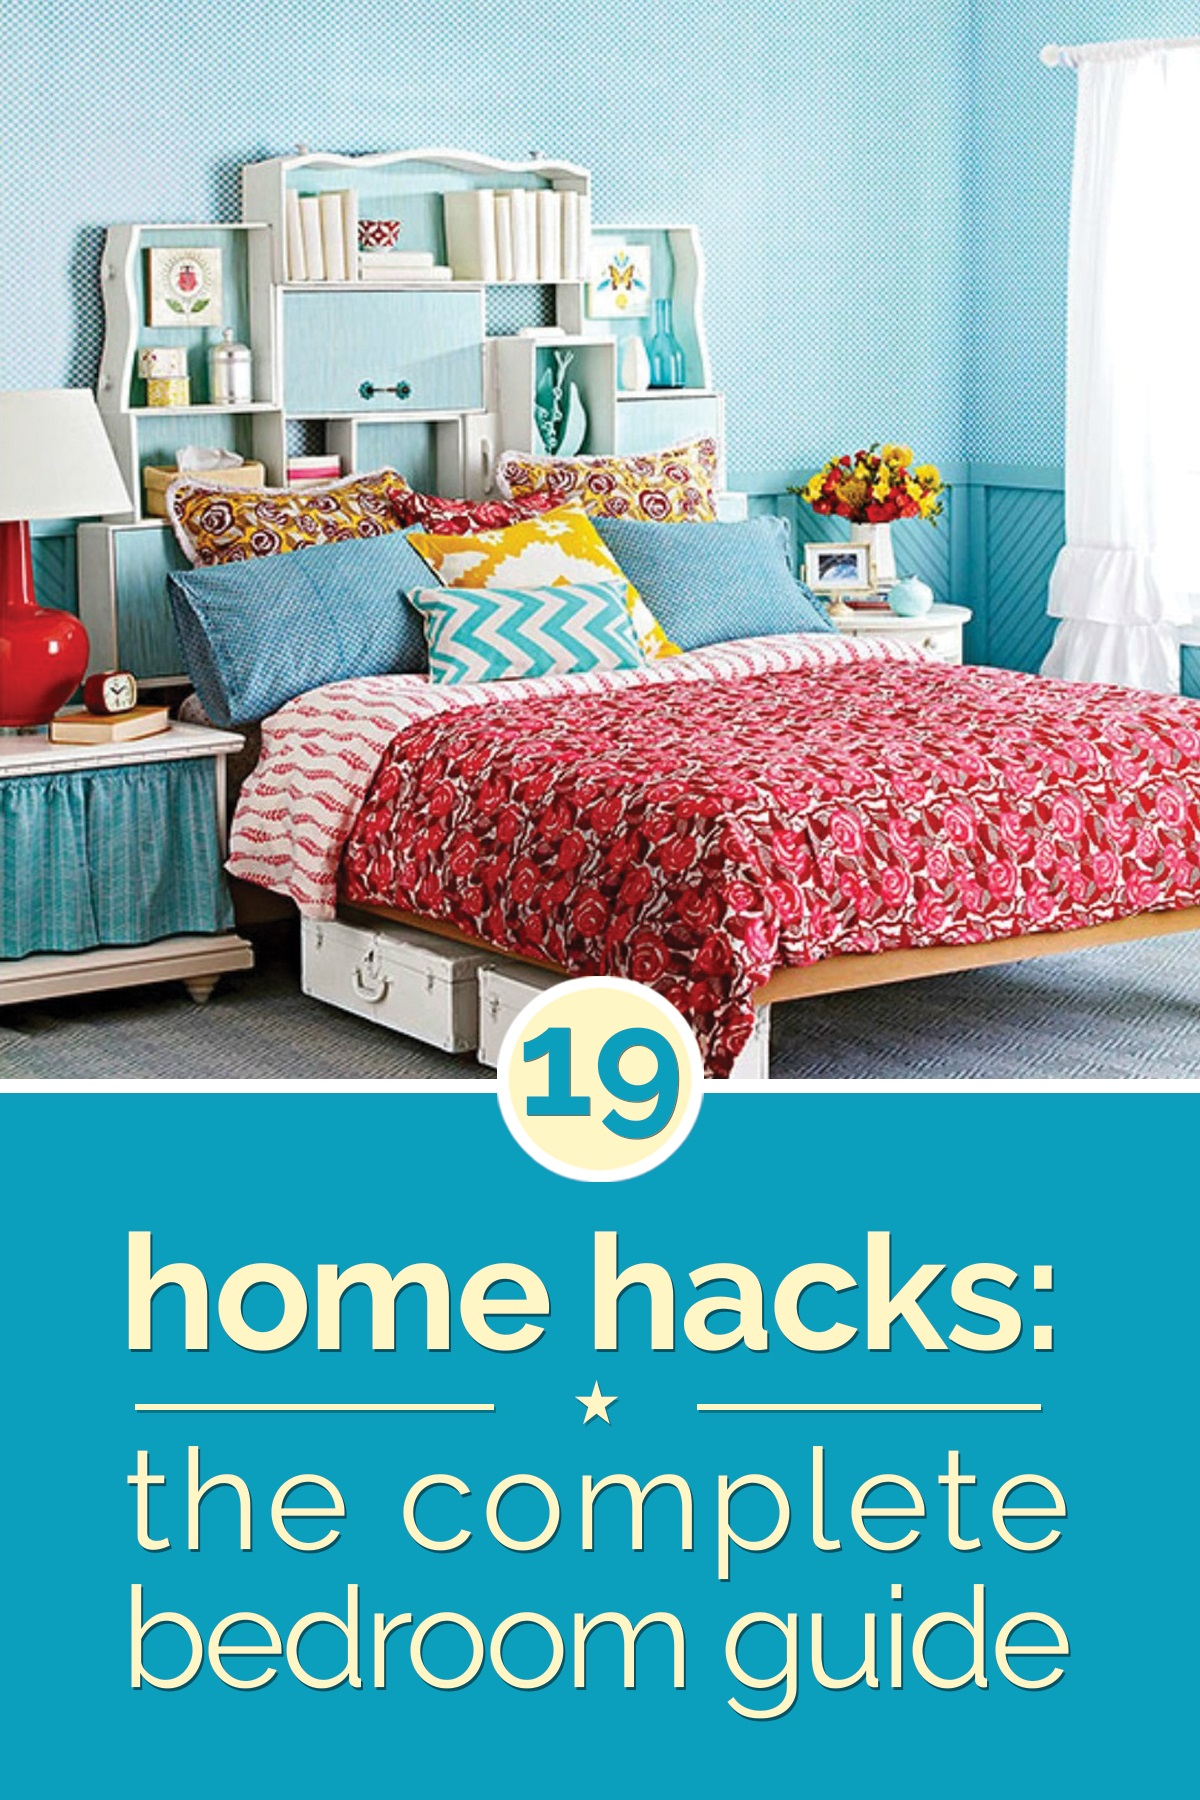 diy-home-hacks-bedroom_6trR0a